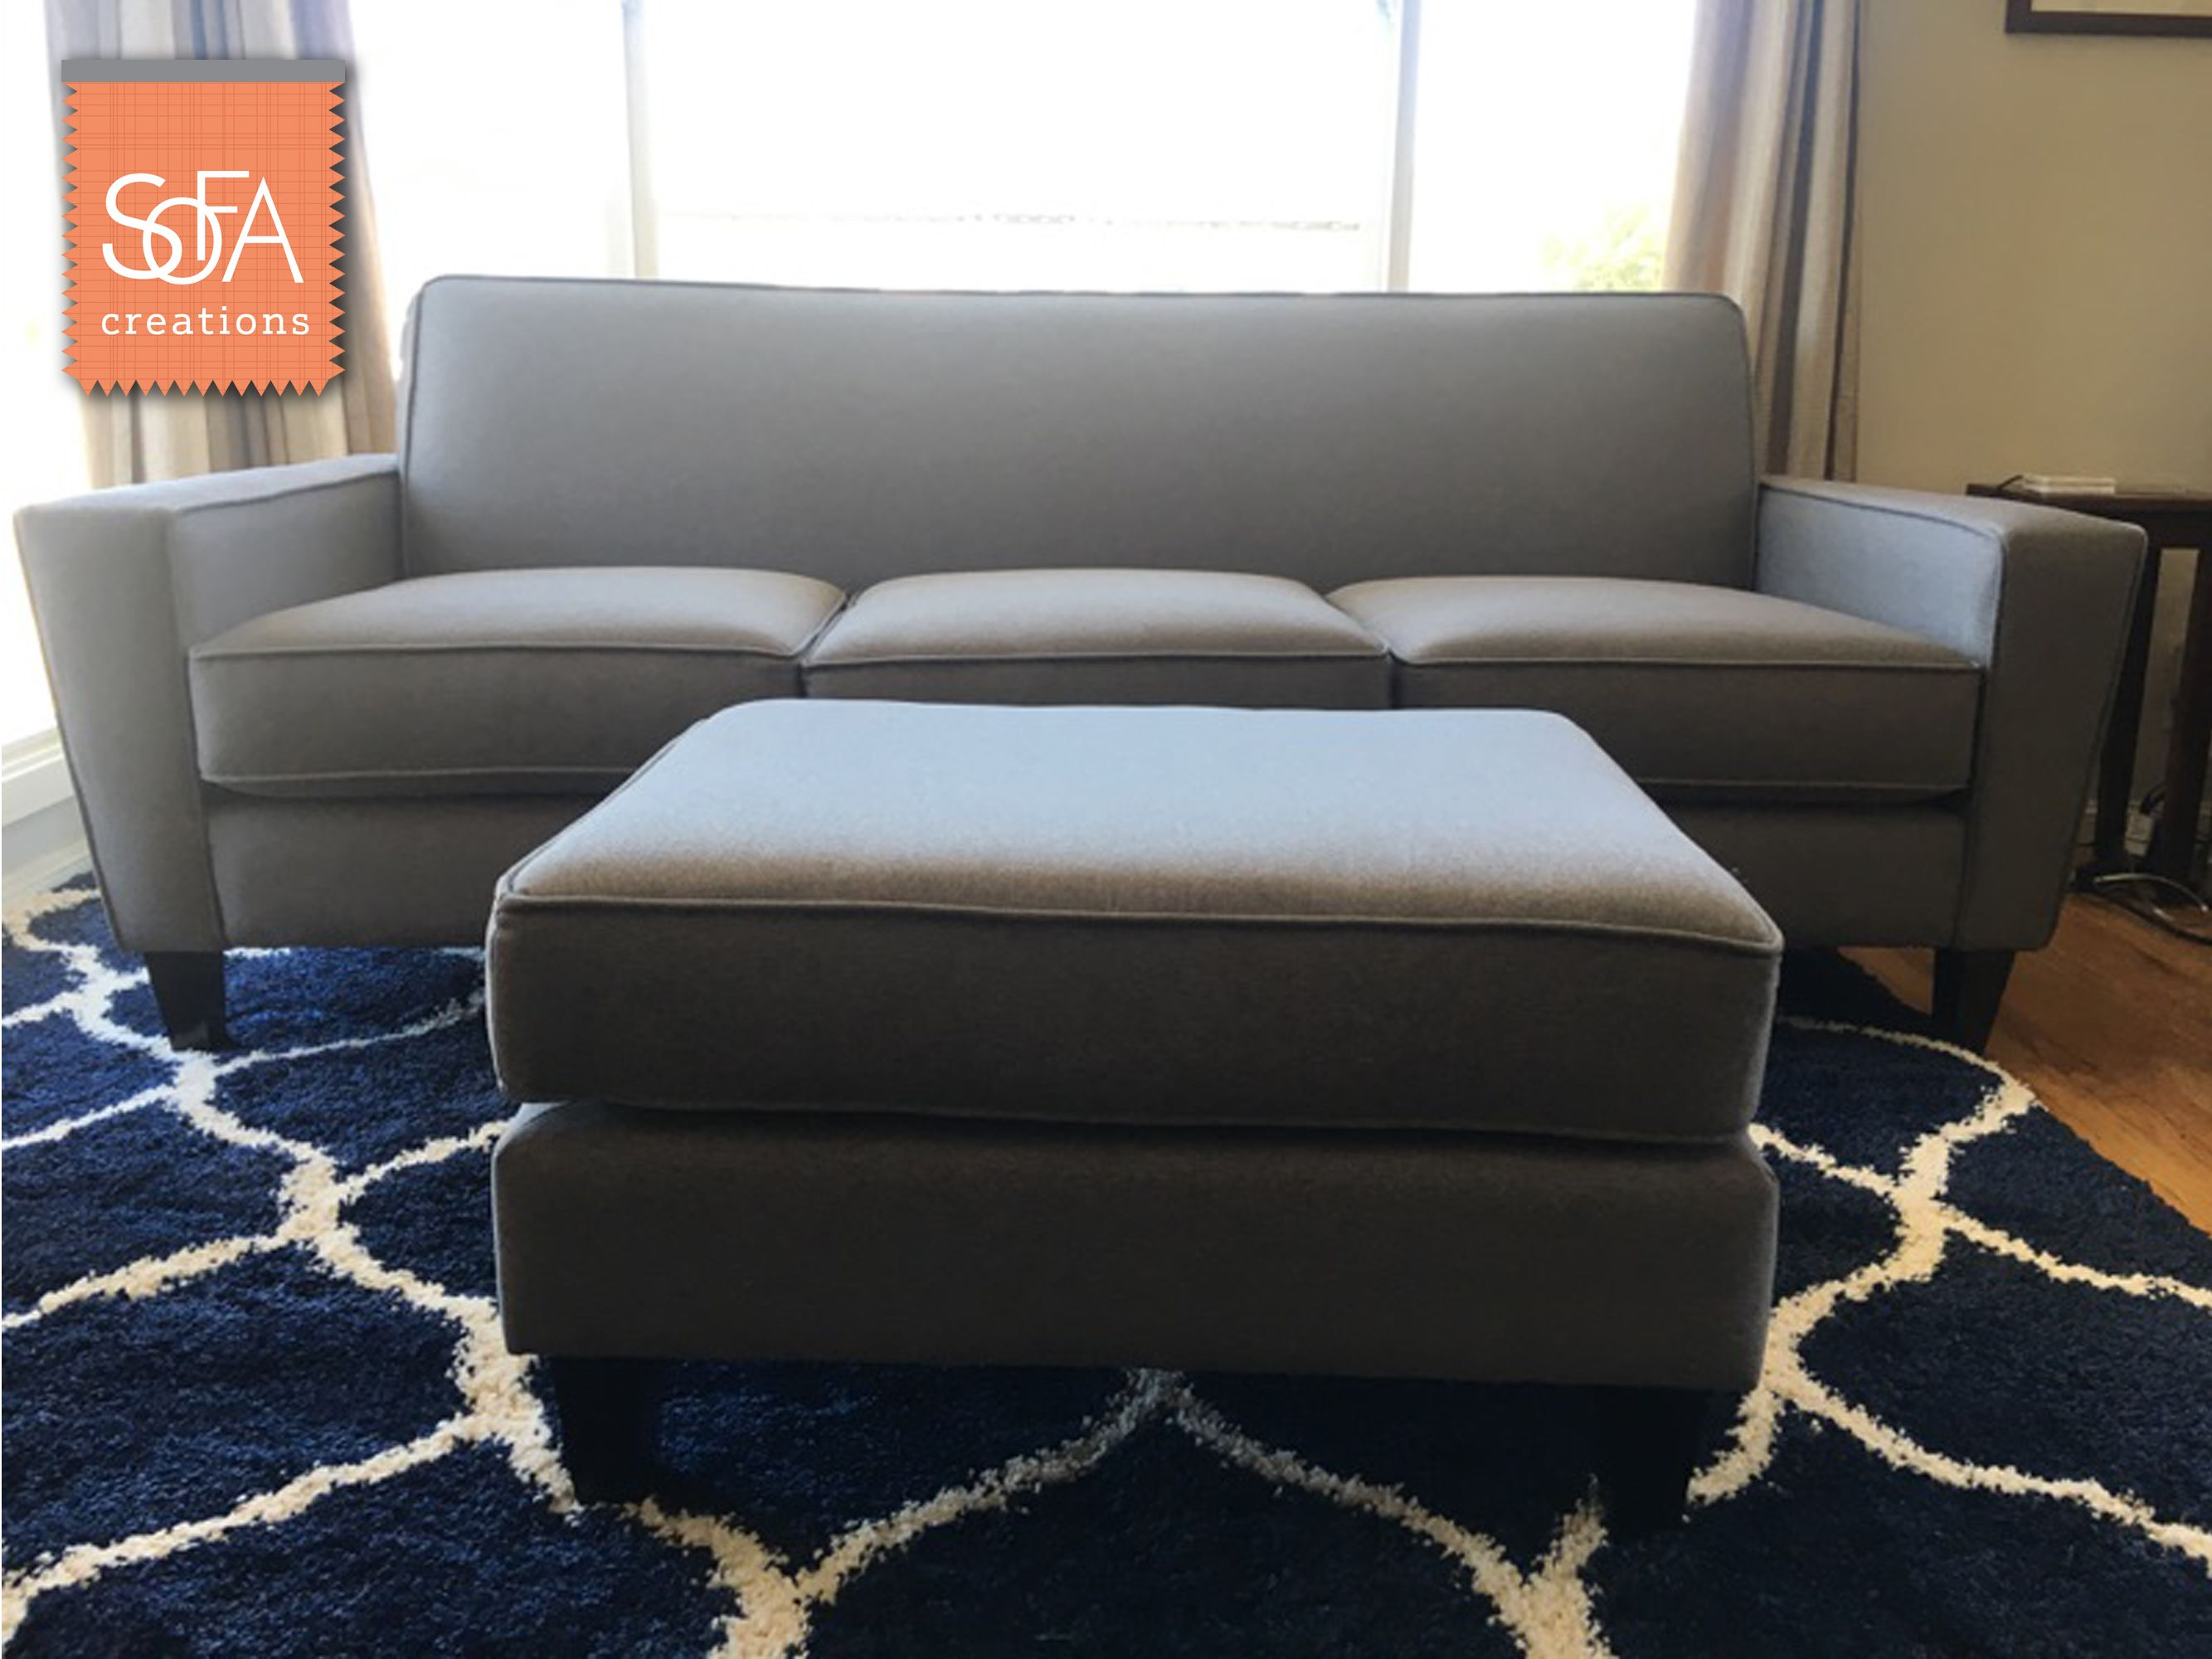 One Of Our New Models The Richmond Sofa Was Just Delivered To One